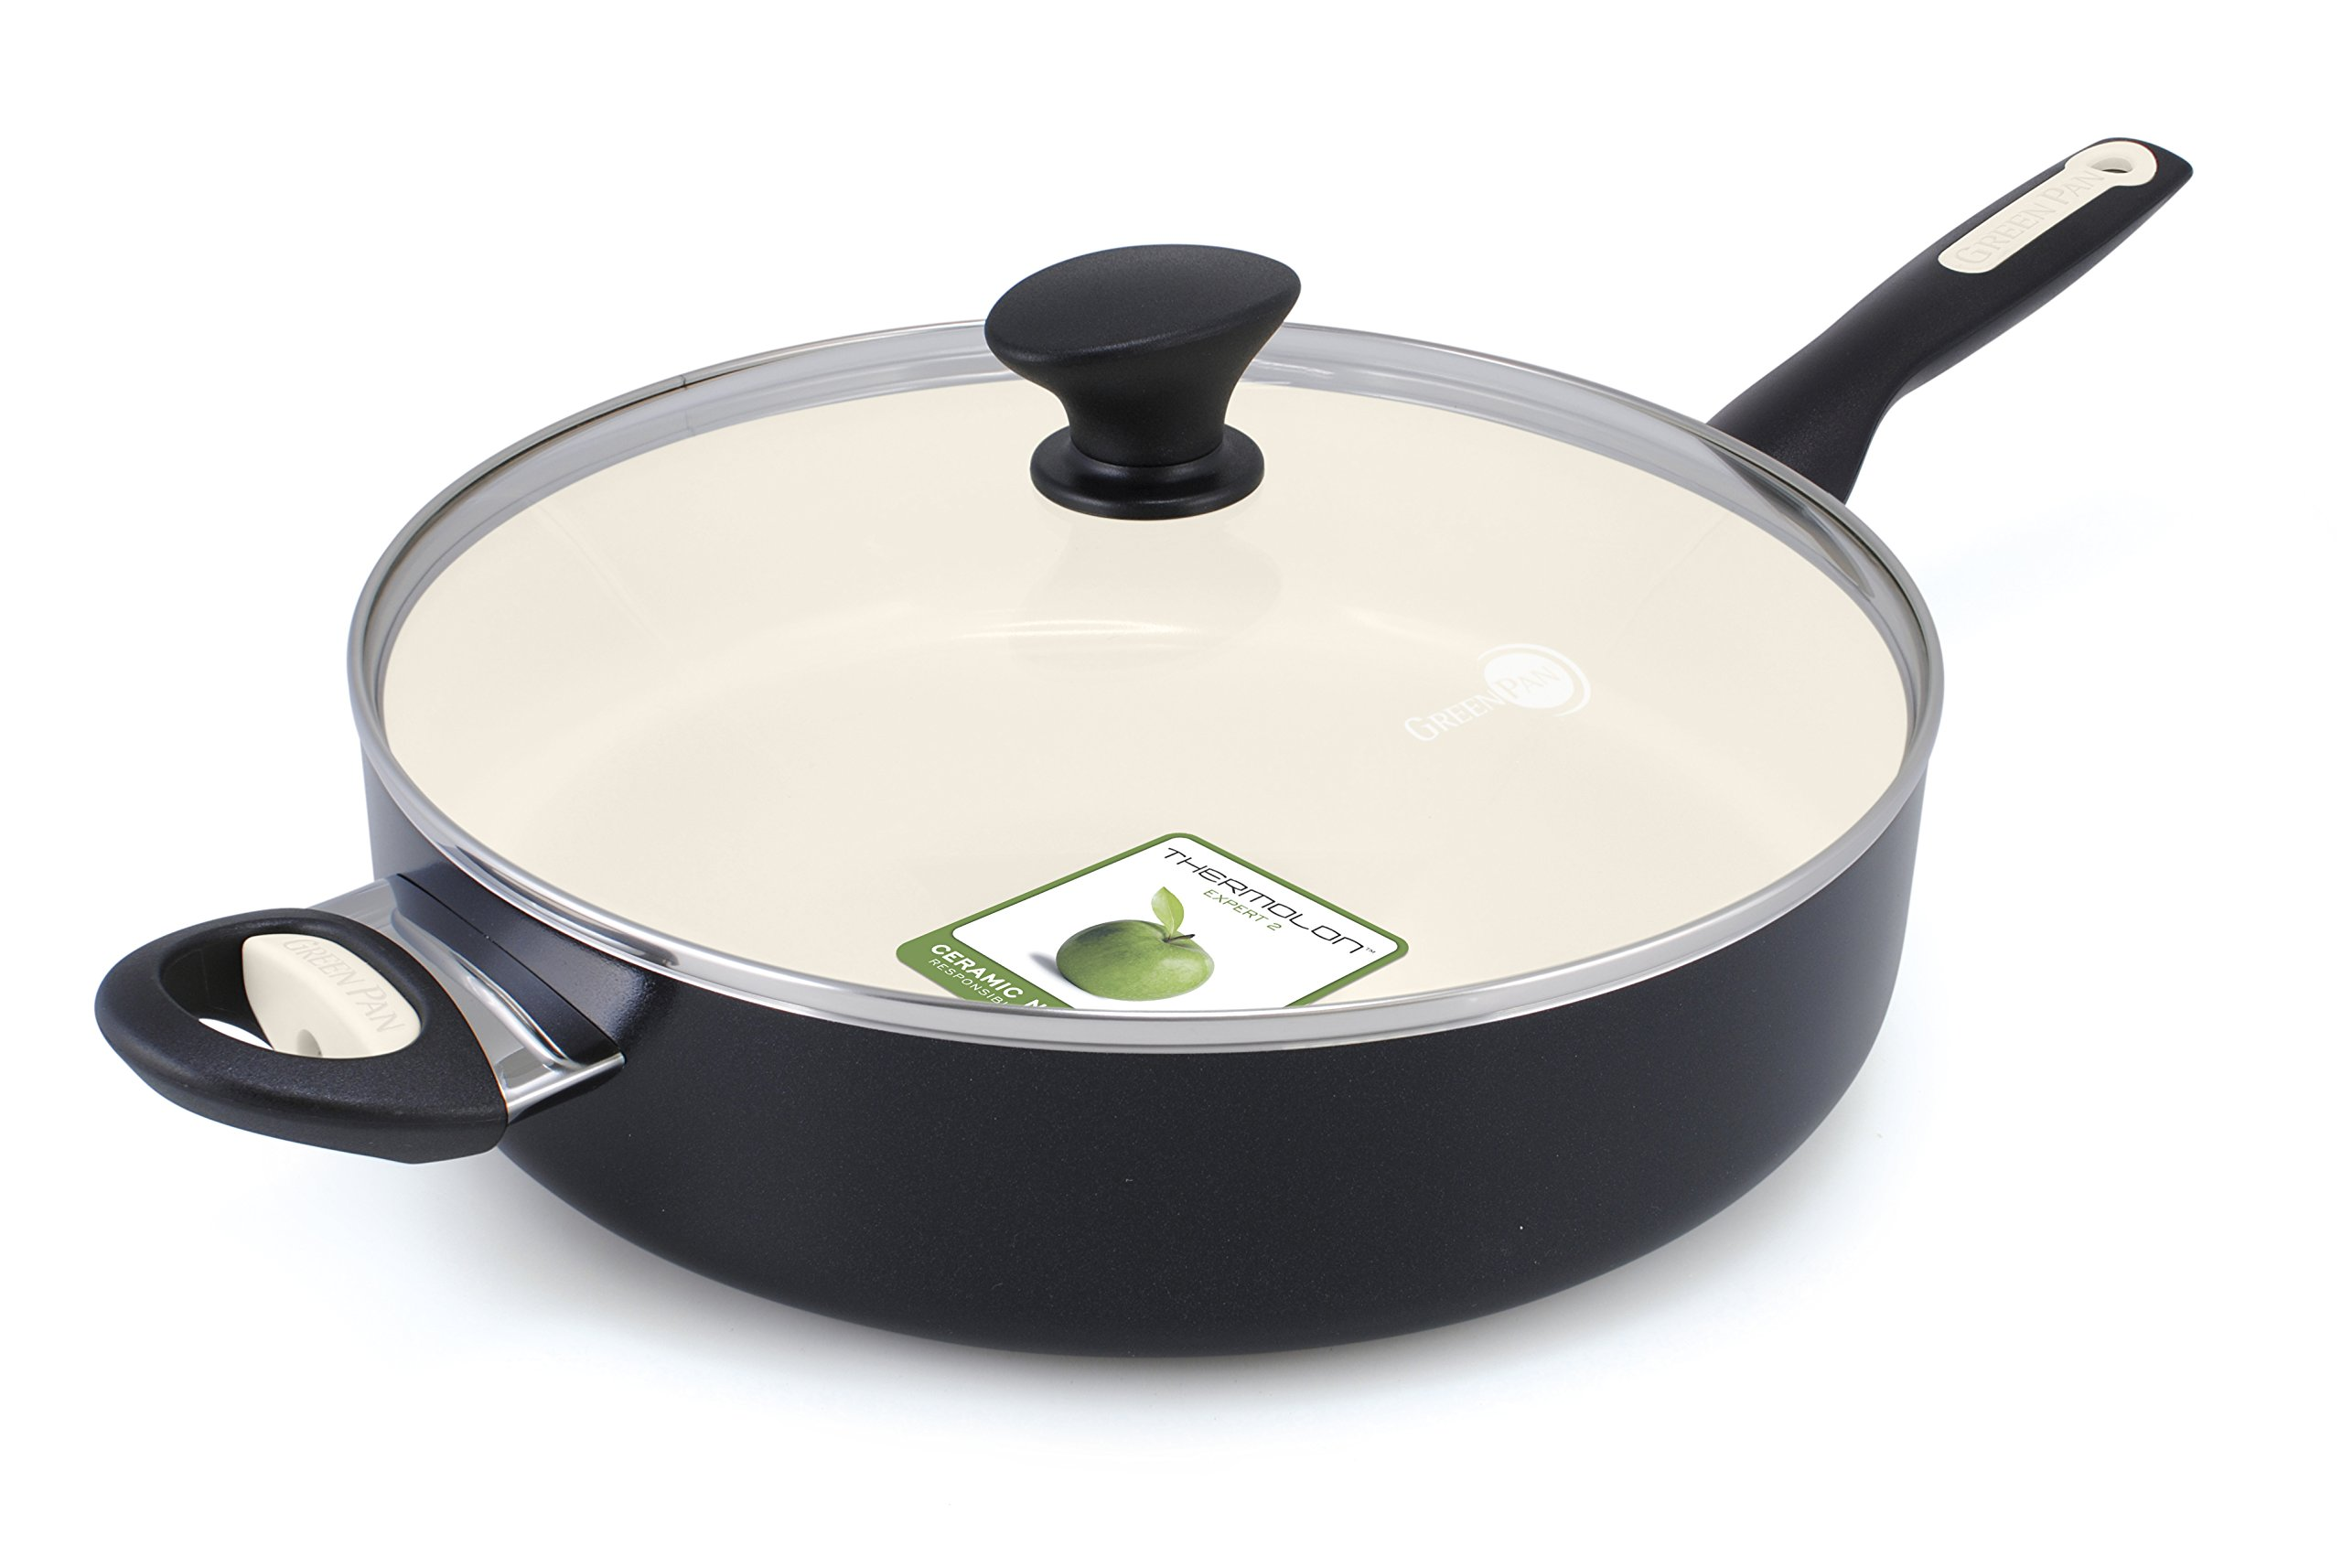 GreenPan Rio 5QT Ceramic Non-Stick Covered Skillet with Helper Handle, Black - CW000058-003 by GreenPan